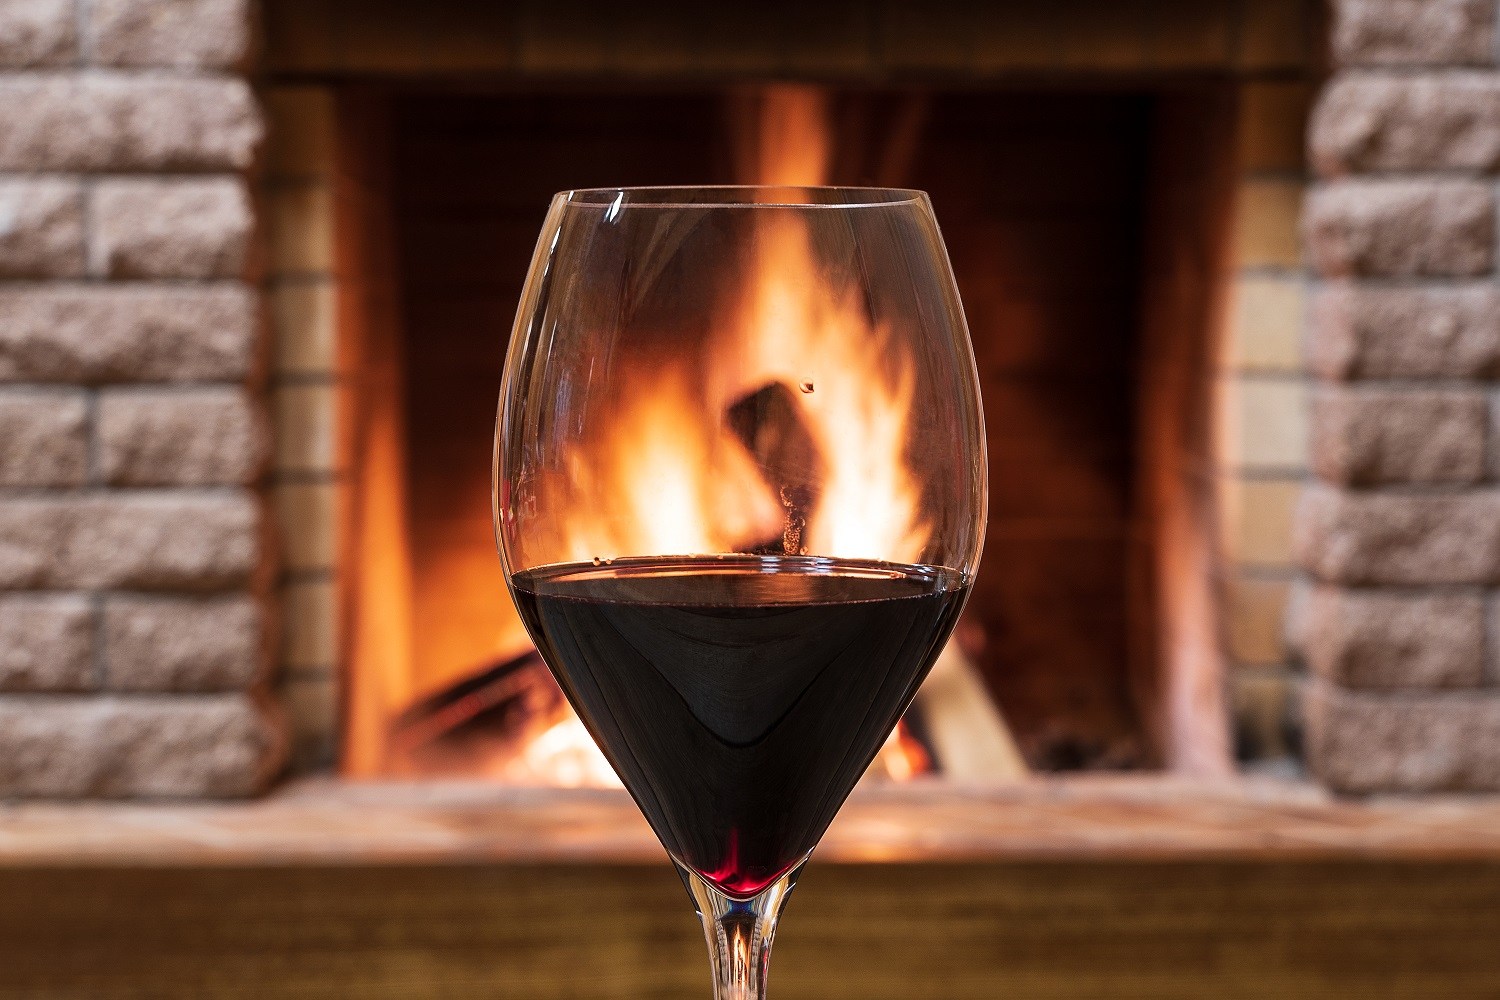 Glass of wine against cozy fireplace background, hygge concept.